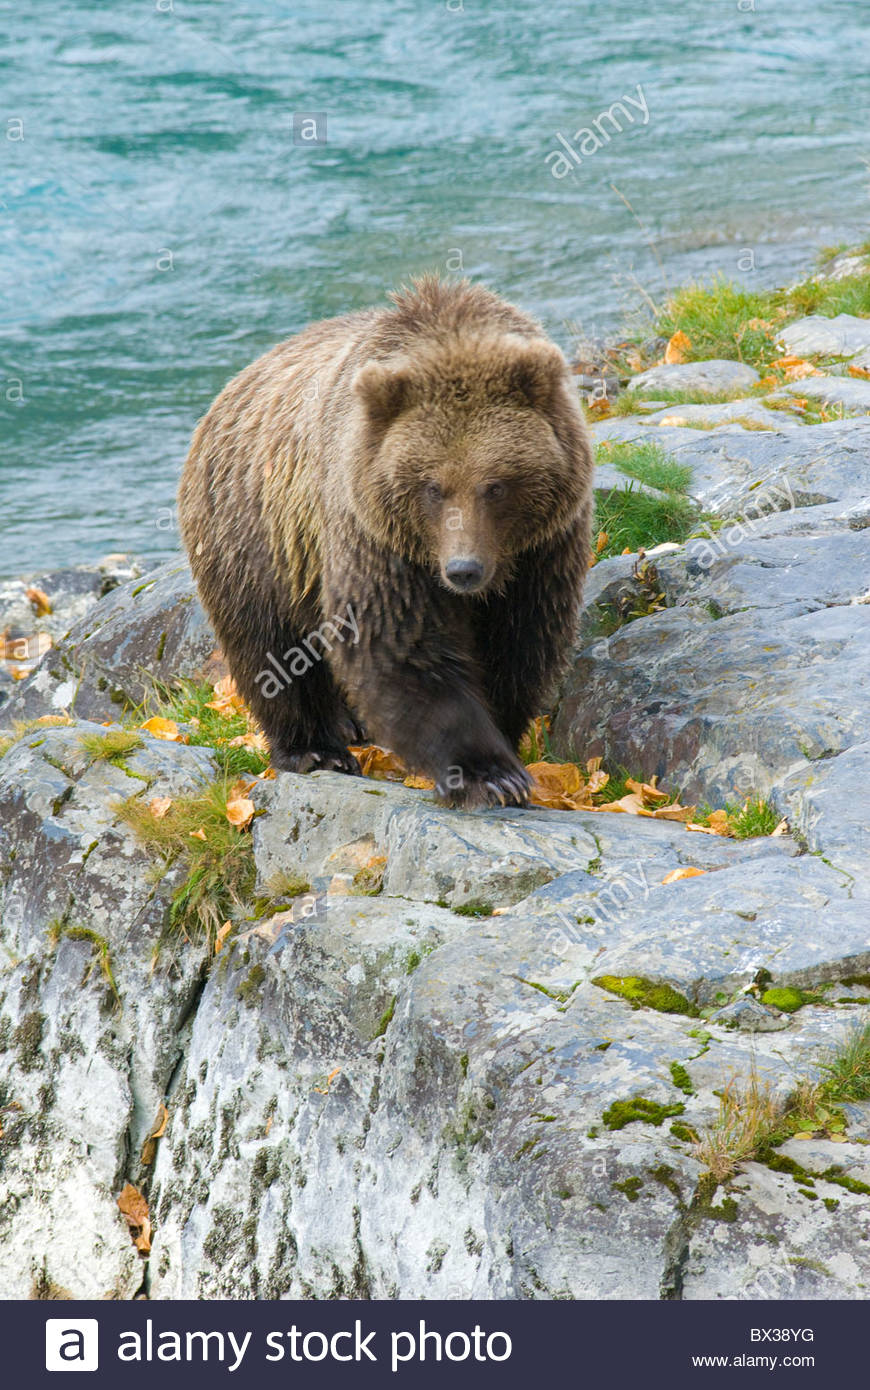 Certainly the most sought after animal sighting in Alaska would be a bear or wolf. They are magnificent mammals - Stock Image